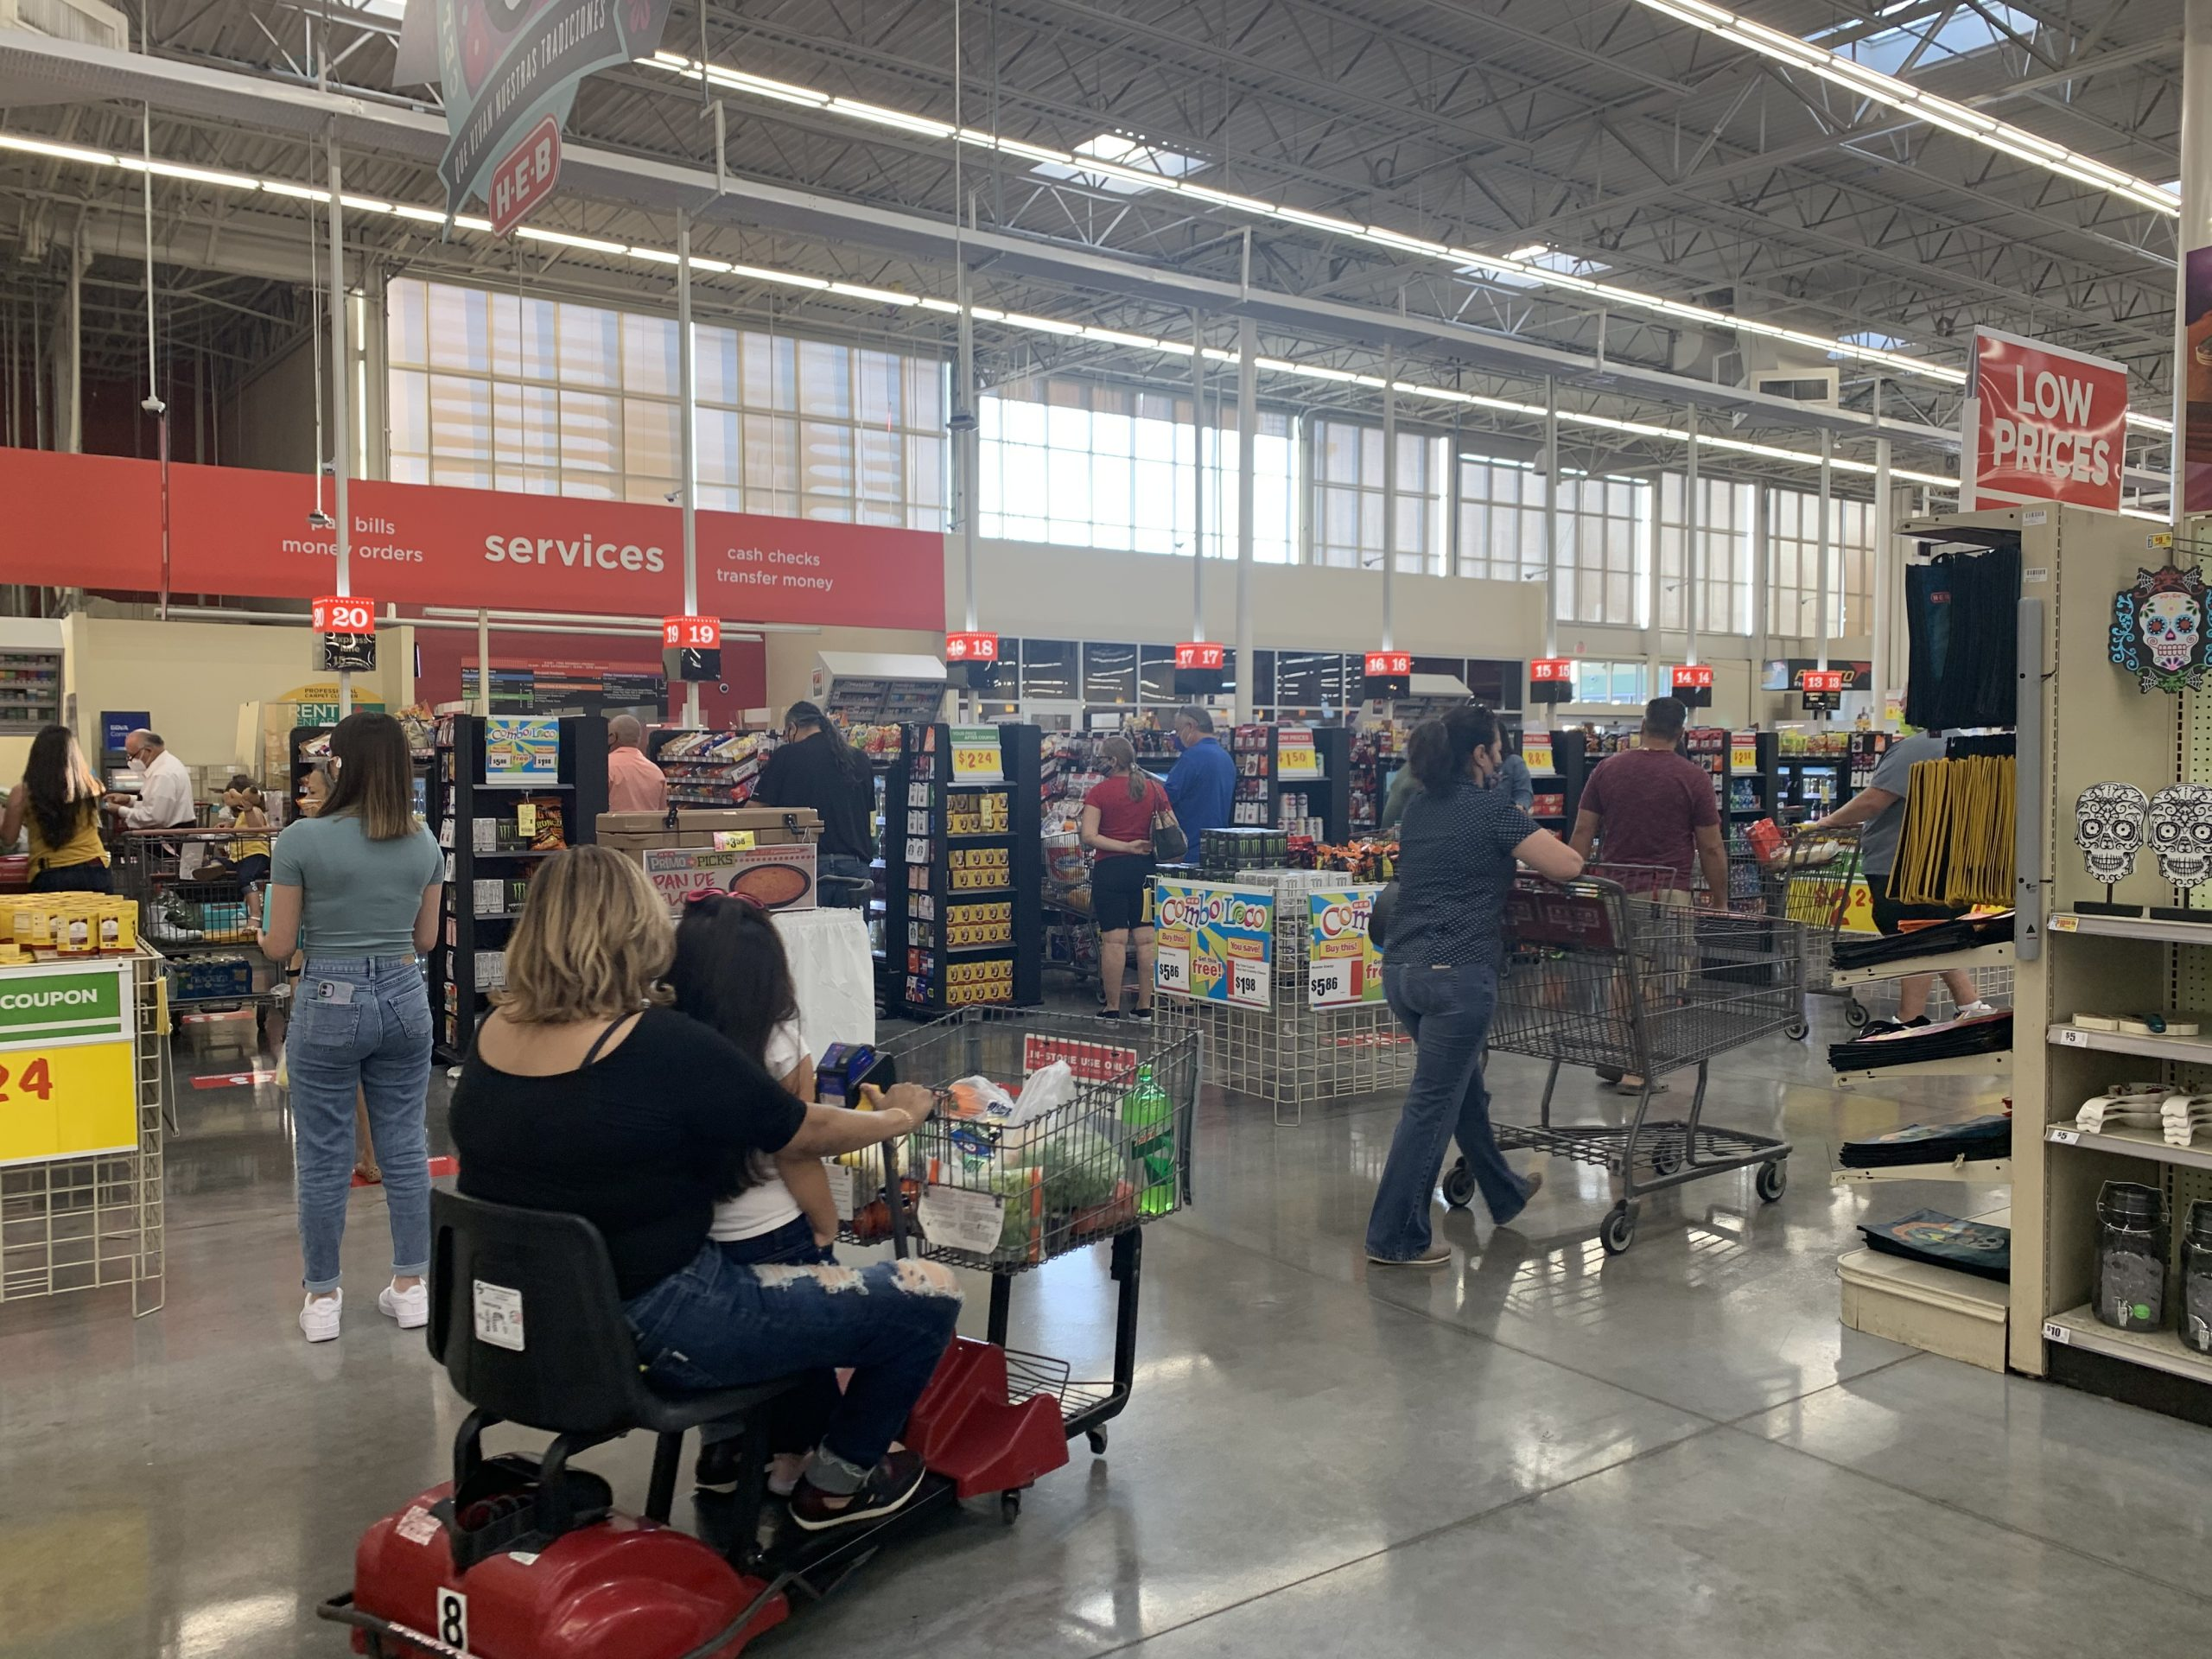 People pushing shopping carts inside of a grocery store